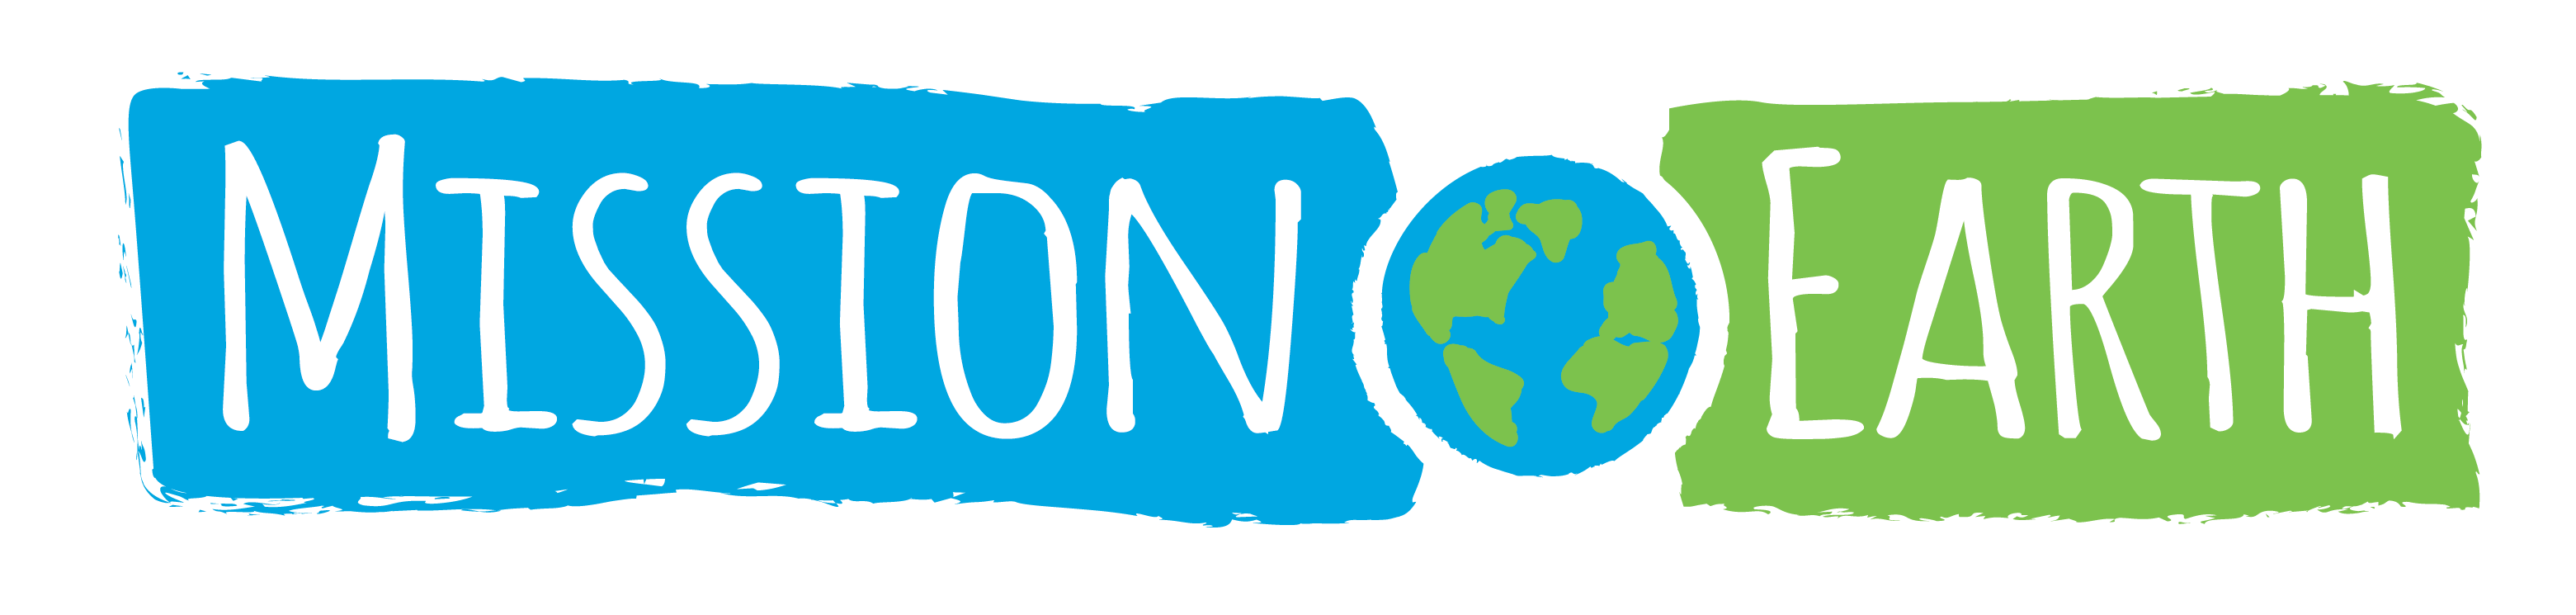 Mission.Earth Partners